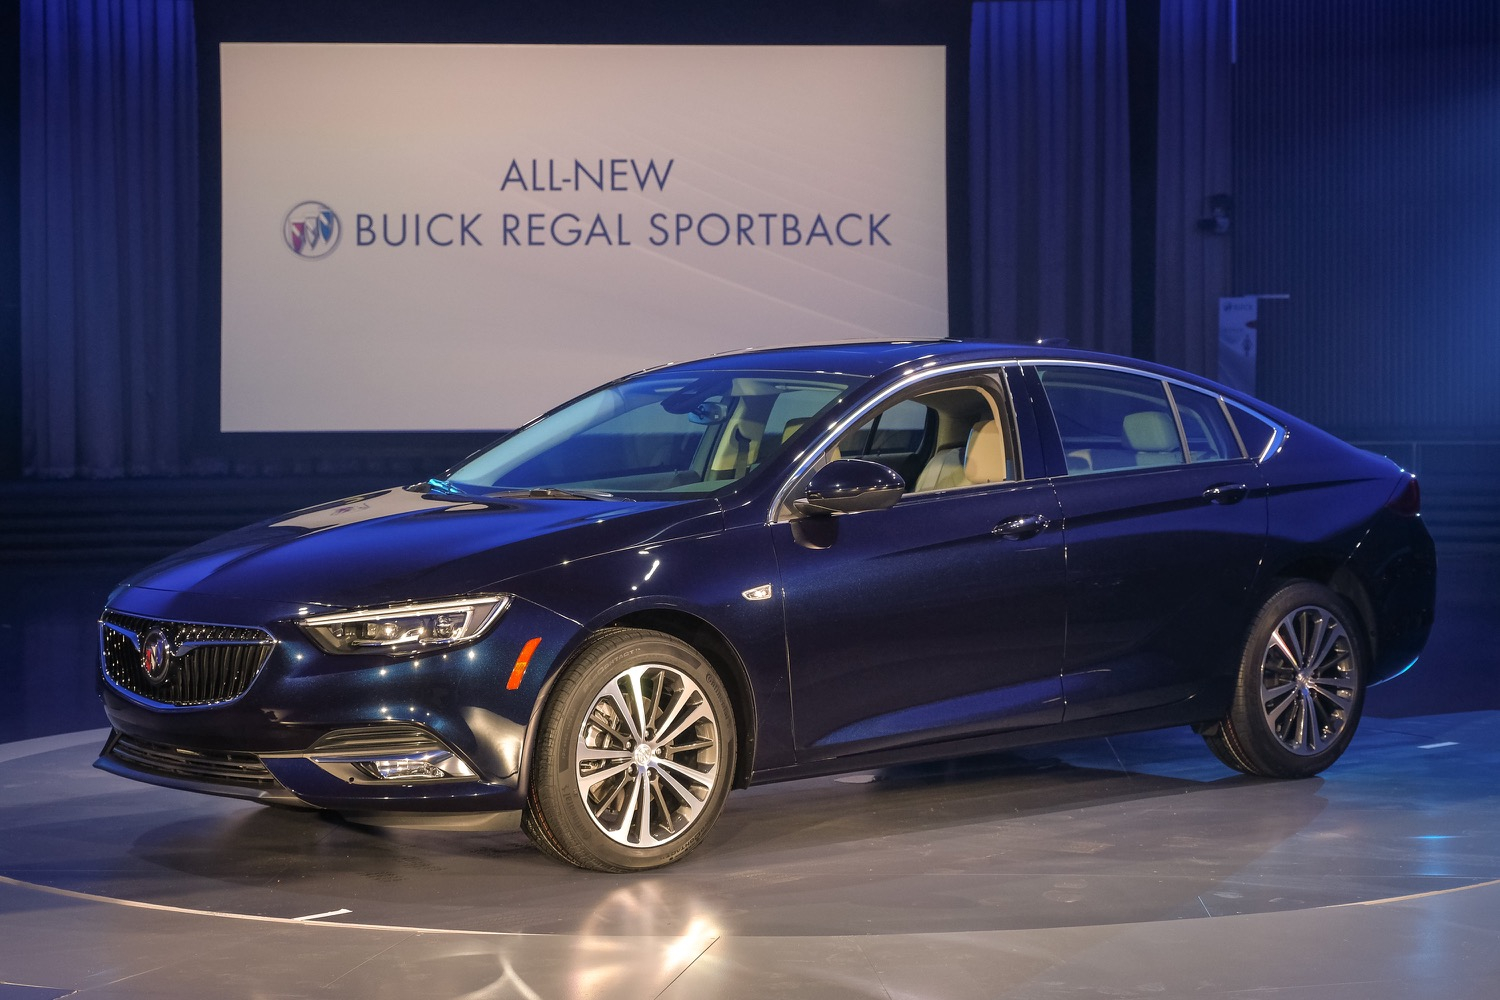 2019 Buick Regal Info, Specs, Wiki | Gm Authority 2022 Buick Regal Sportback Configurations, Ground Clearance, Release Date